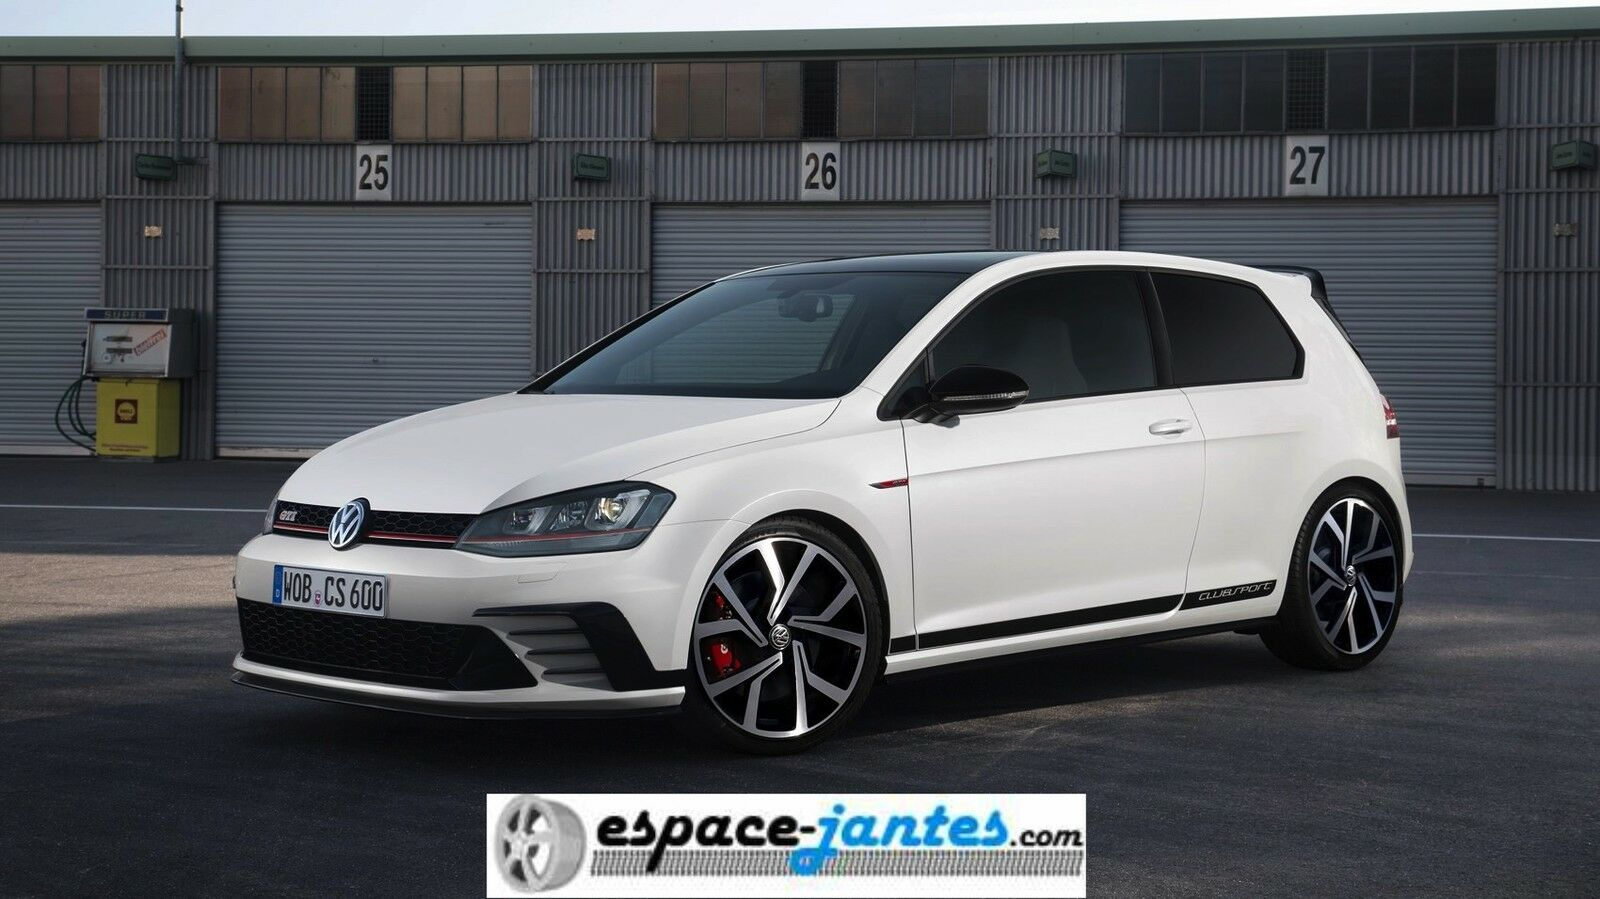 4 jantes alu neuves type vw golf 7 vii gti clubsport 19 scirocco passat eur 780 00 picclick fr. Black Bedroom Furniture Sets. Home Design Ideas